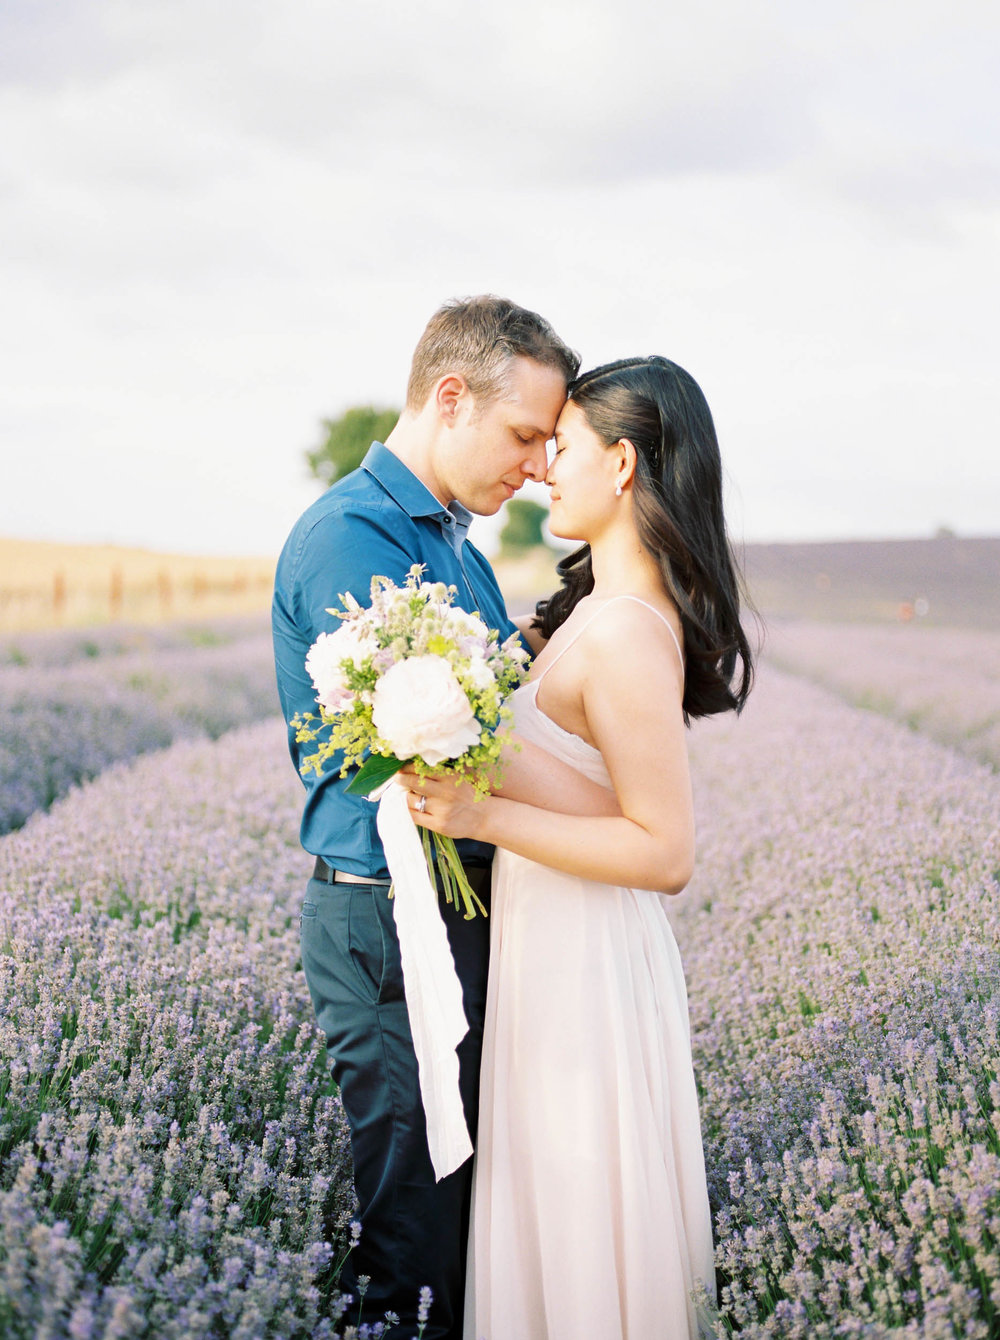 Amy O'Boyle Photography- Destination & UK Fine Art Film Wedding Photographer- Hitchin Lavender Engagement Shoot-1.jpg